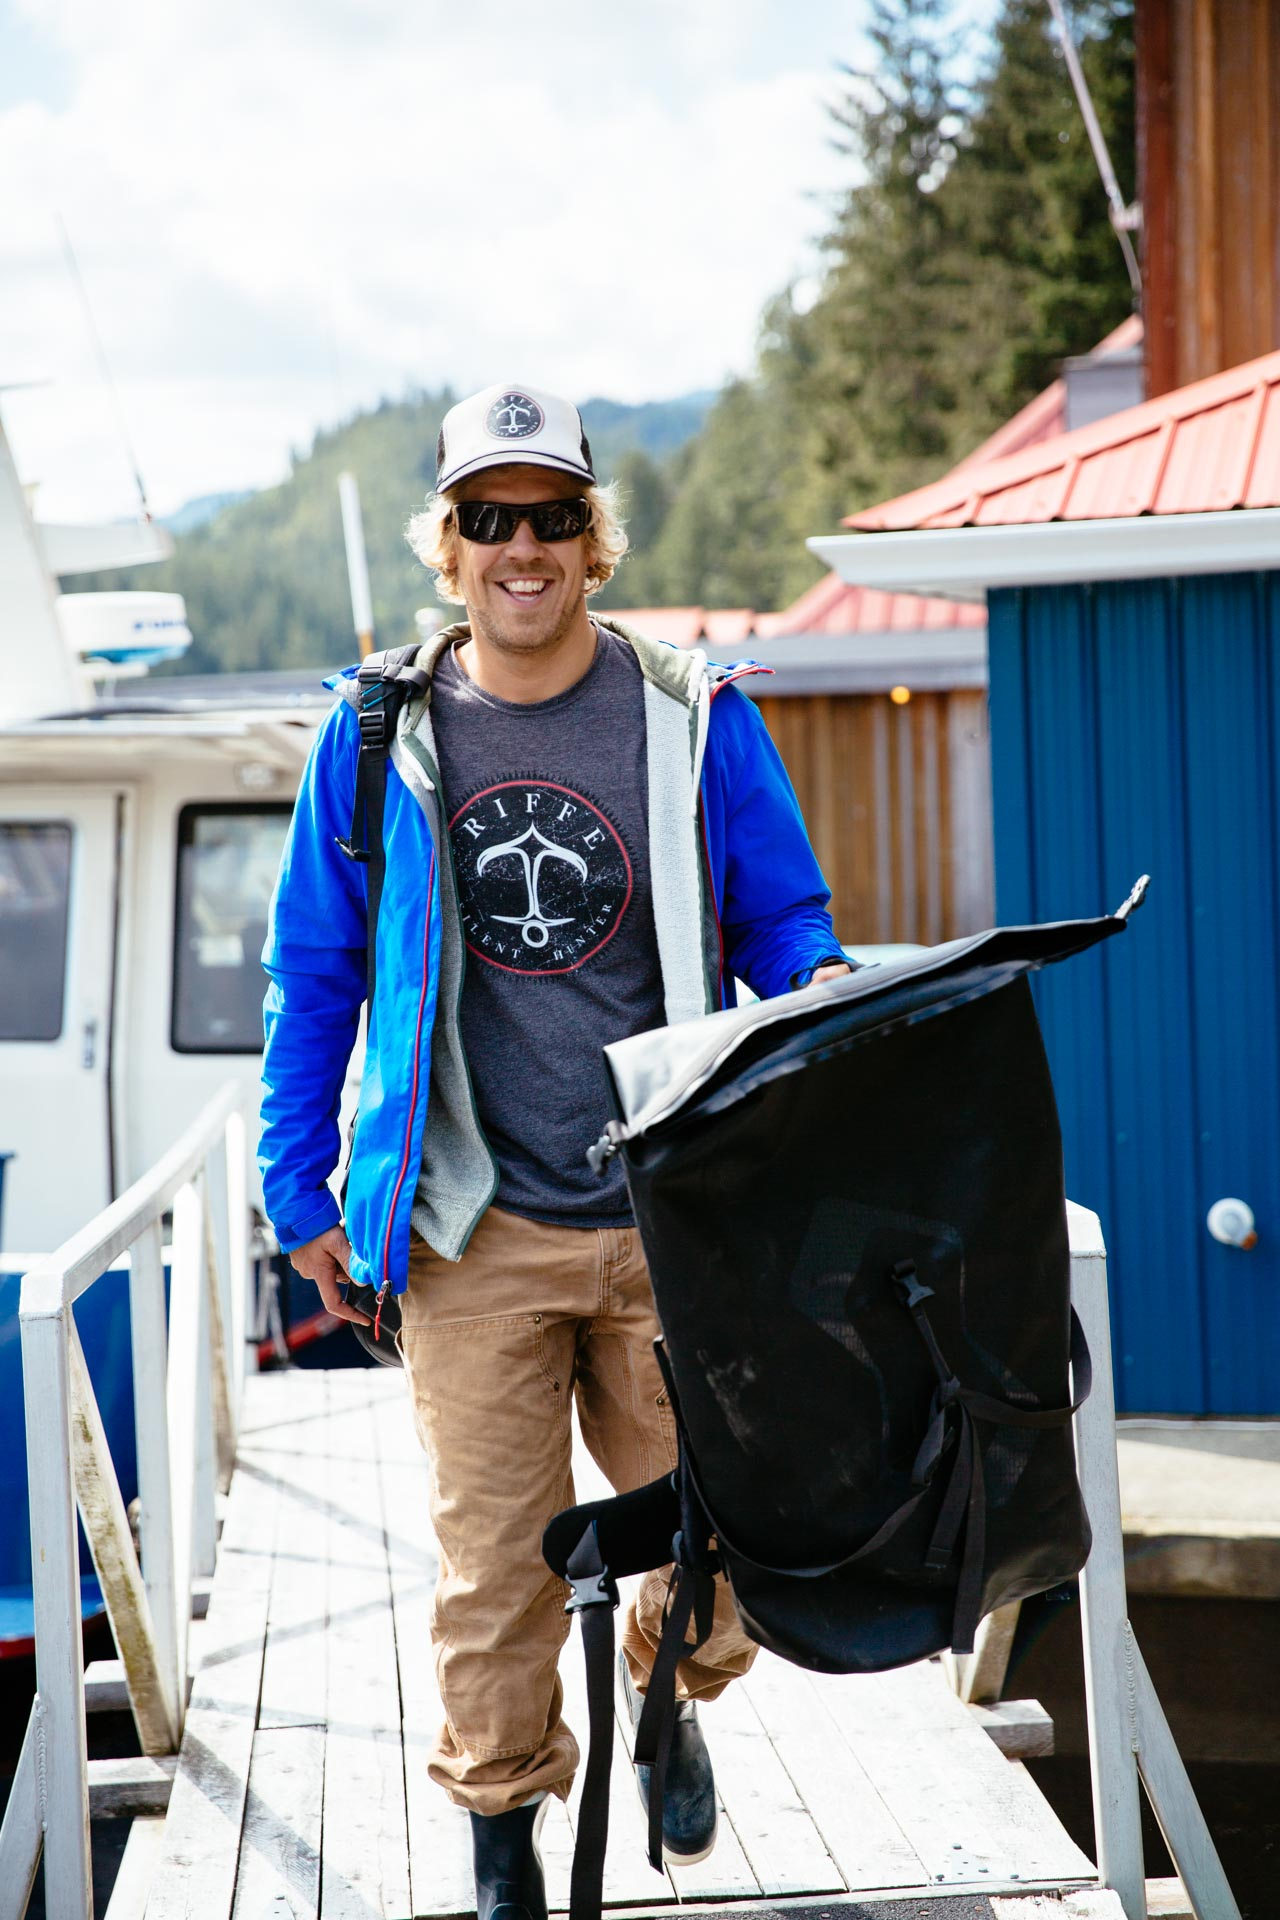 Chris Adair, Owner/Operator of Bottom Dwellers Freediving loading the boat at Nimmo Bay Resort with the crew. Photo: Jeremy Koreski